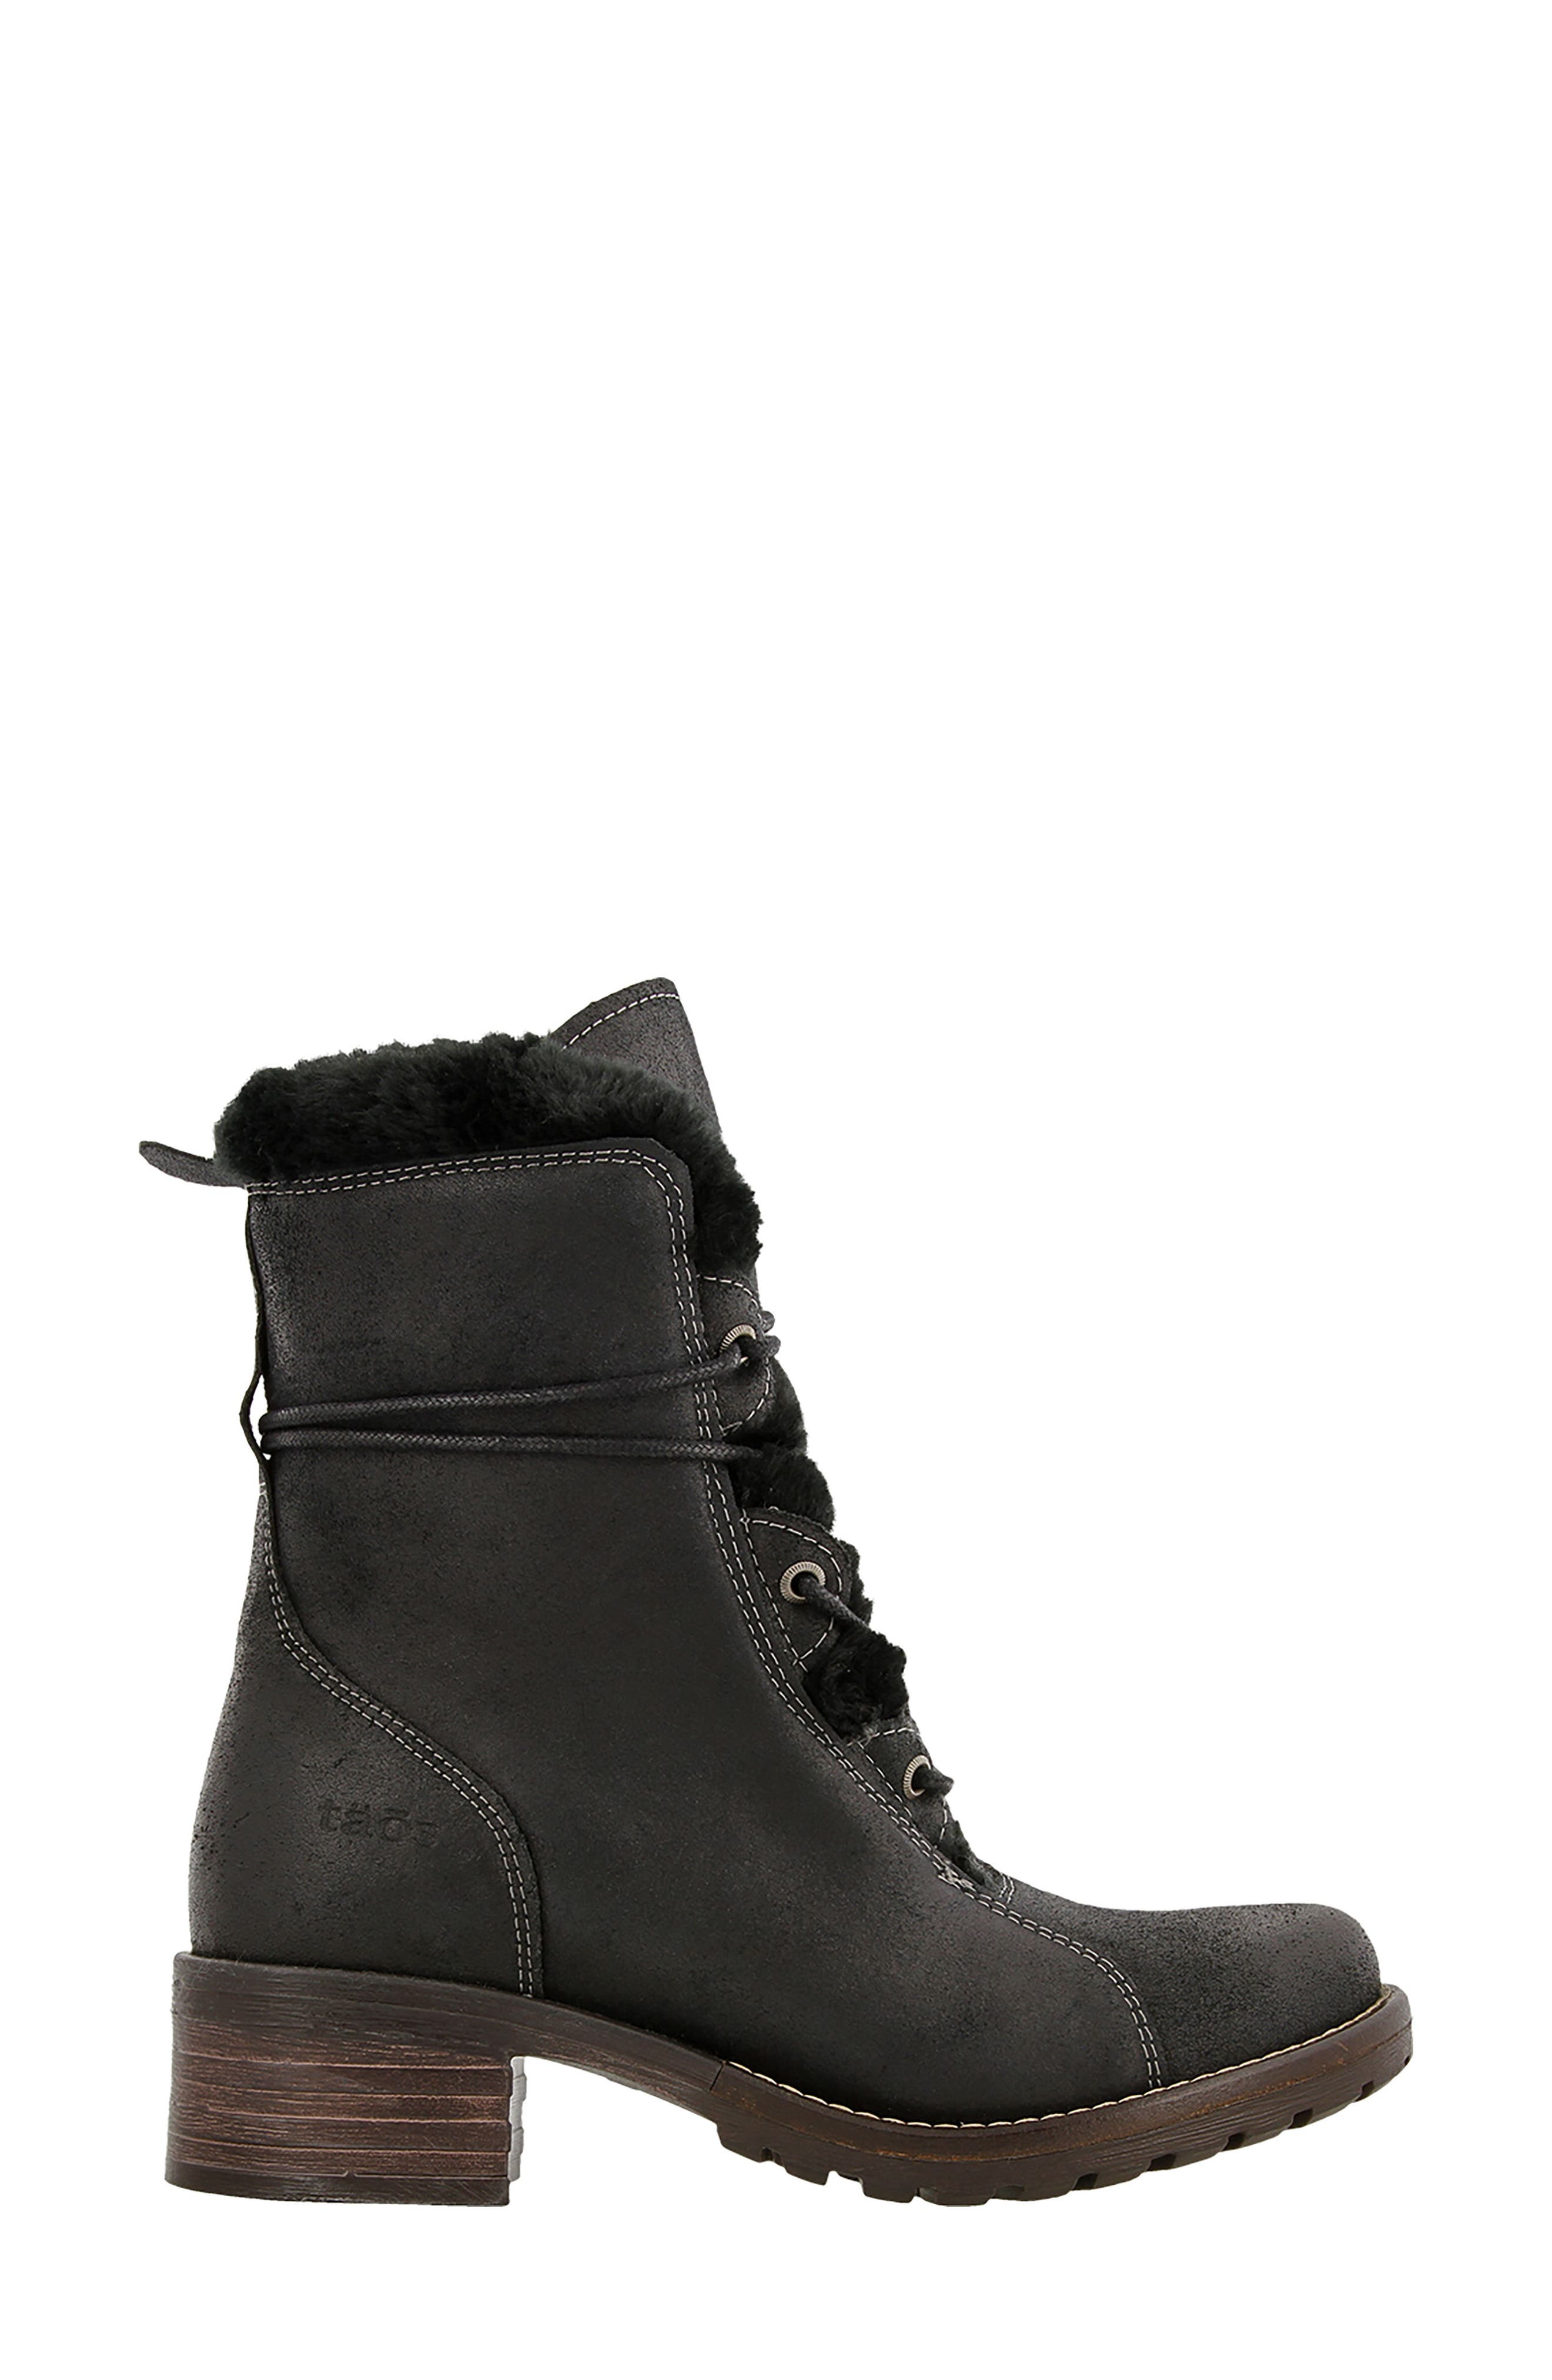 Alternate Image 3  - Taos Furkle Boot with Faux Fur Trim (Women)